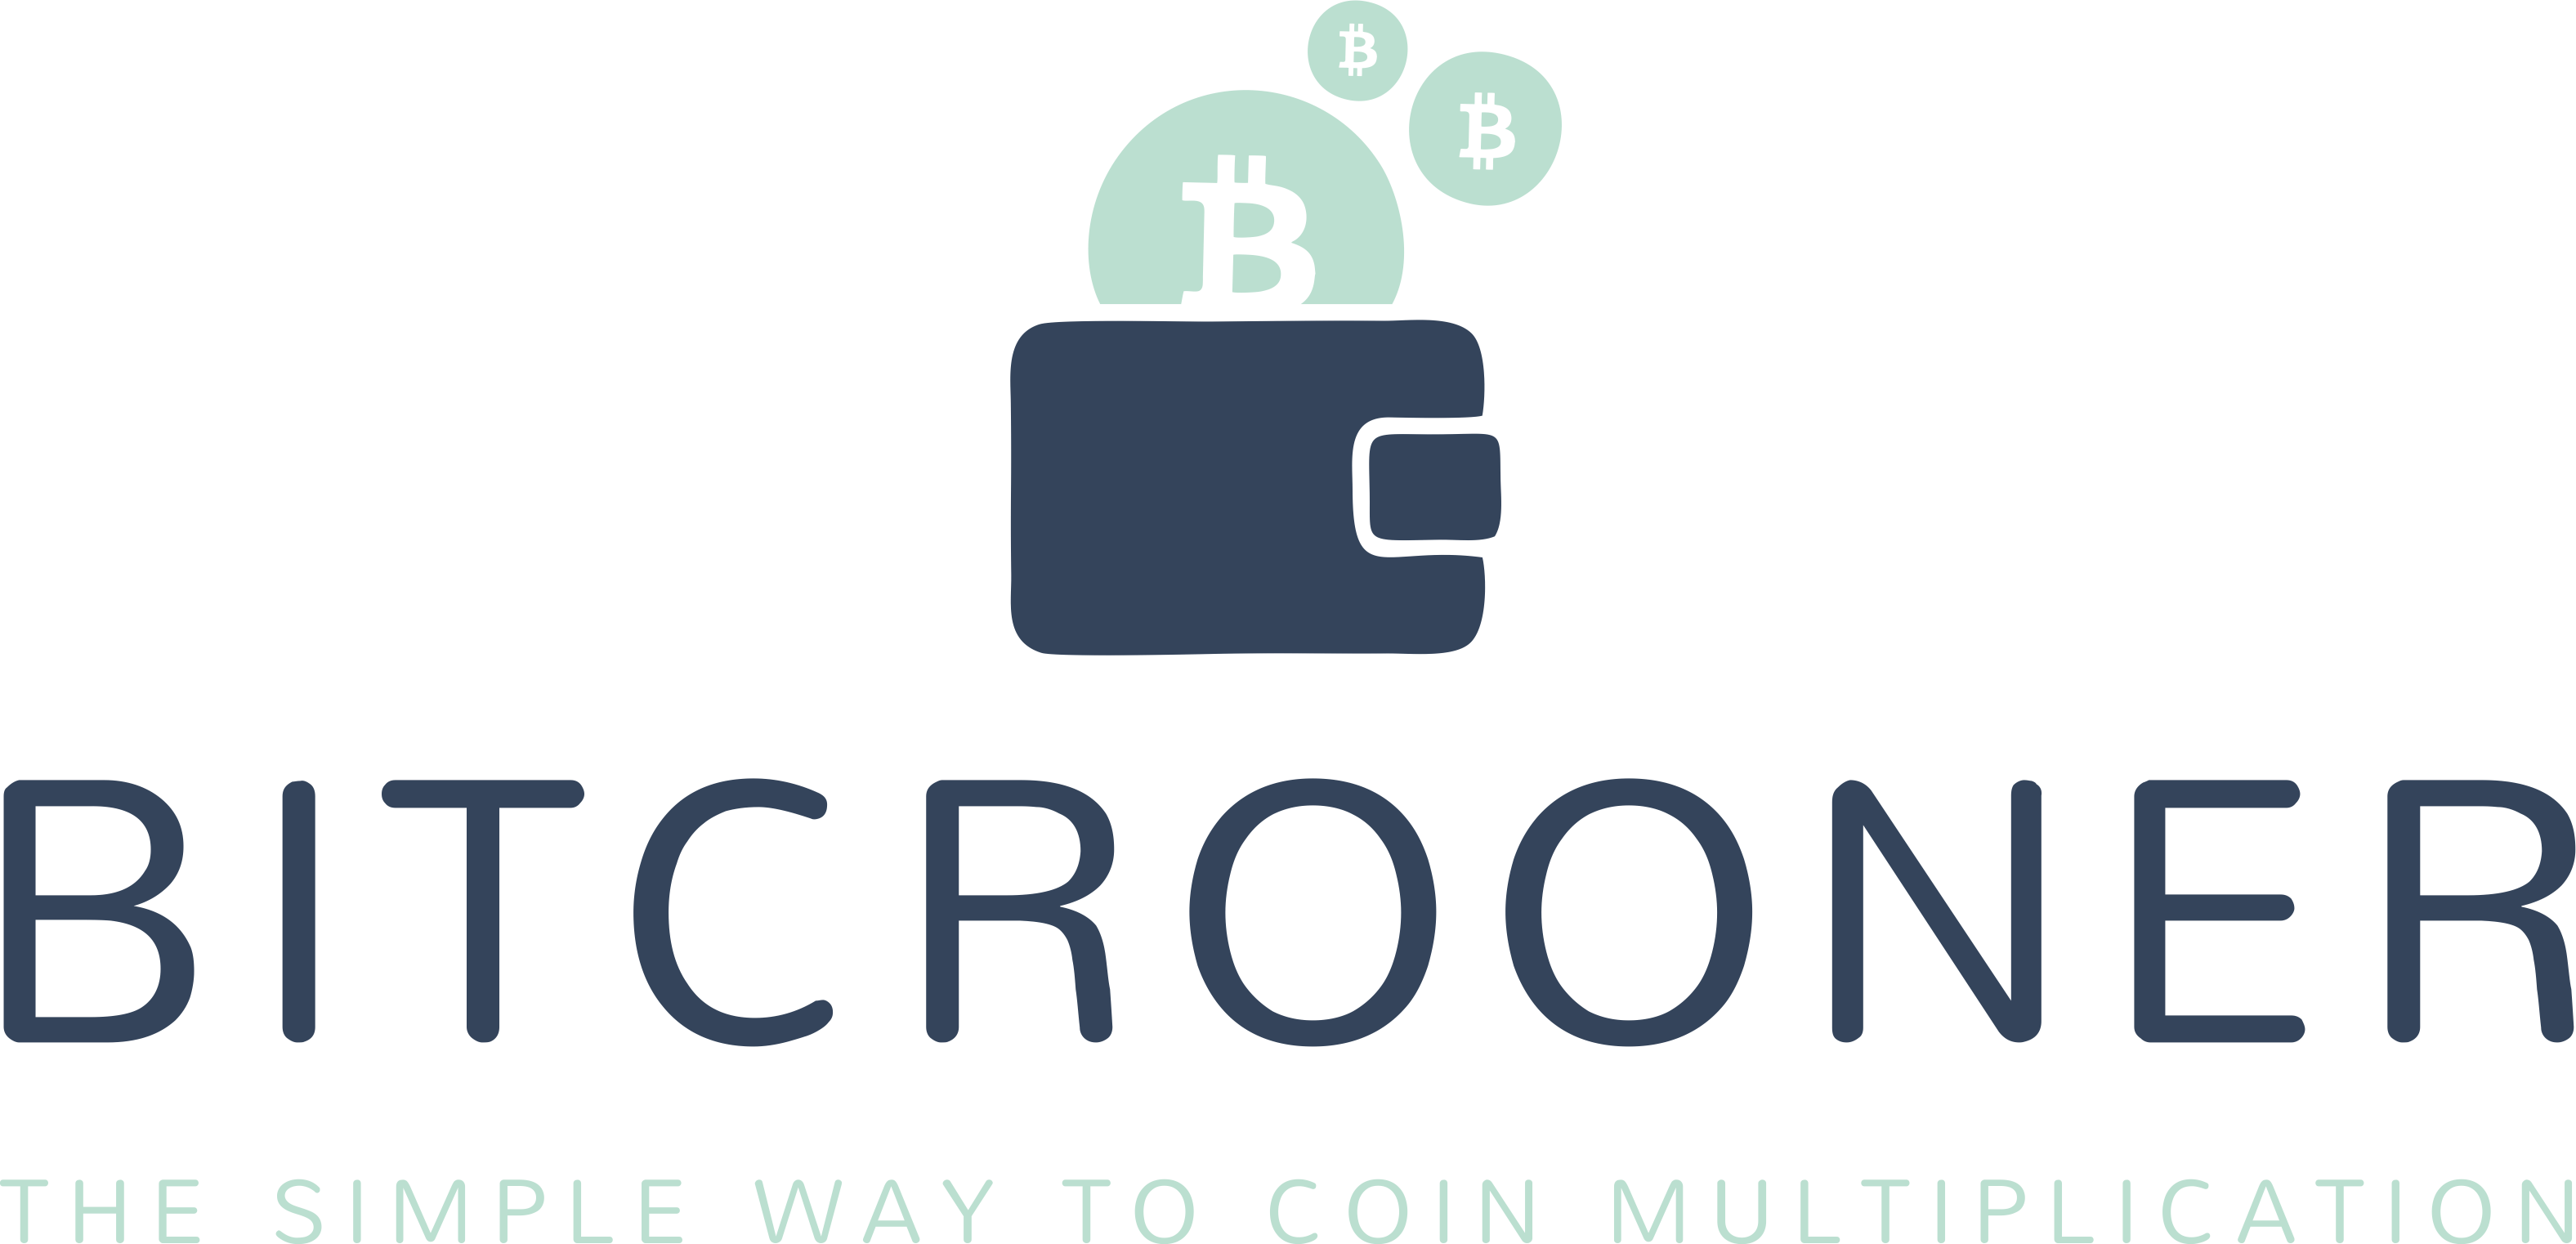 Bitcrooner Enables The Users To Earn 1 Btc Daily For 3 Weeks From